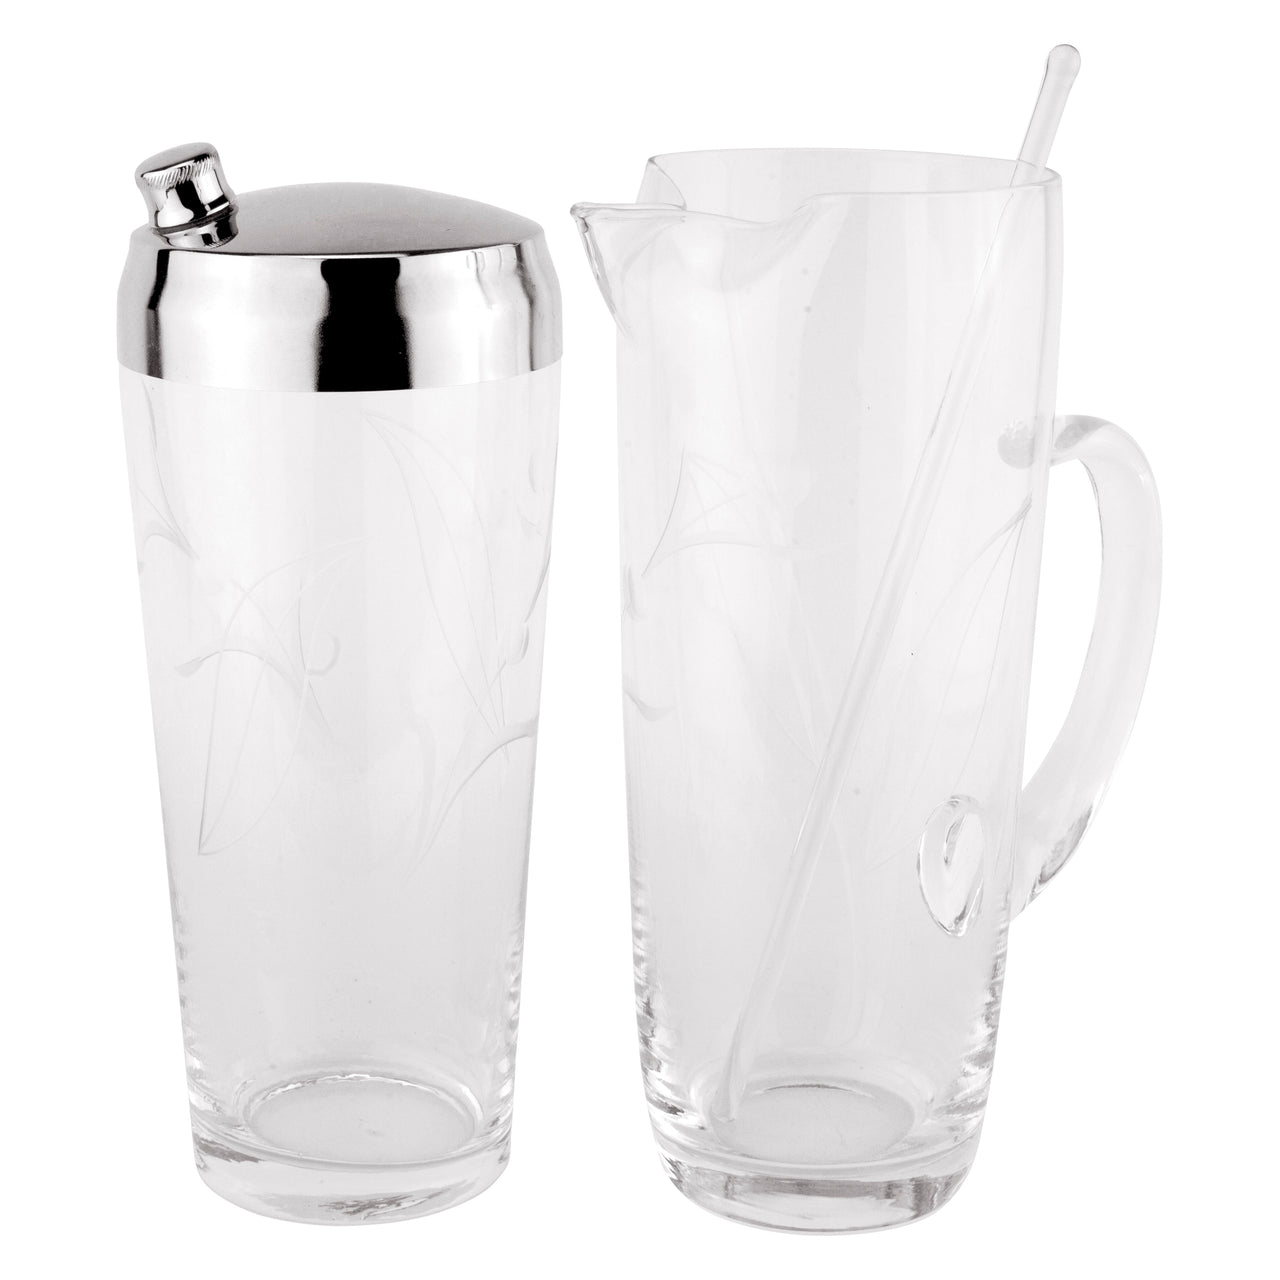 Etched Glass Cocktail Shaker & Pitcher Set